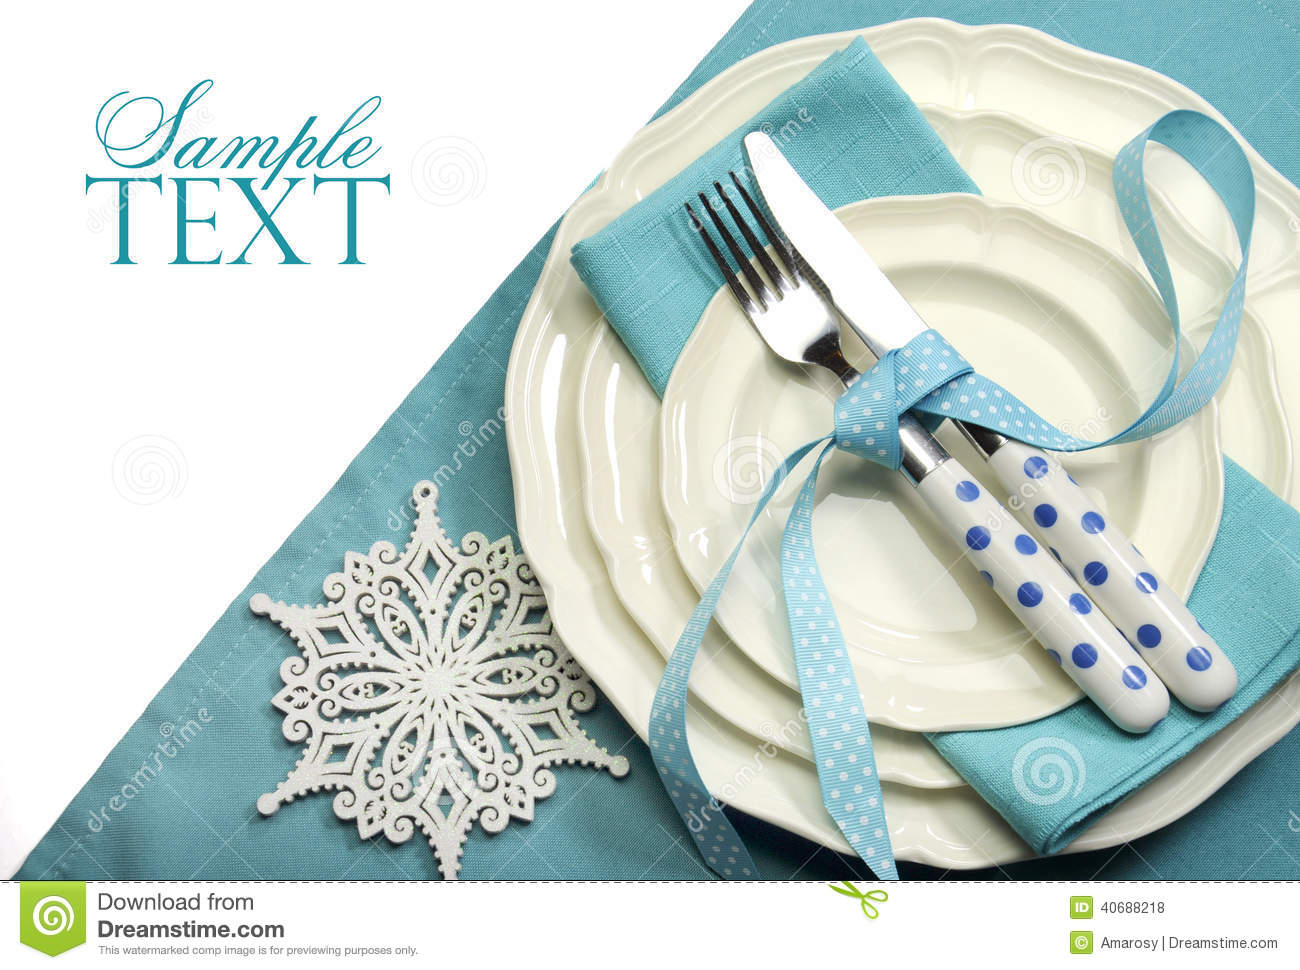 Beautiful Aqua Blue Festive Christmas Dining Table Place  : beautiful aqua blue festive christmas dining table place setting happy holiday ornaments decorations copy space 40688218 from www.dreamstime.com size 1300 x 970 jpeg 164kB